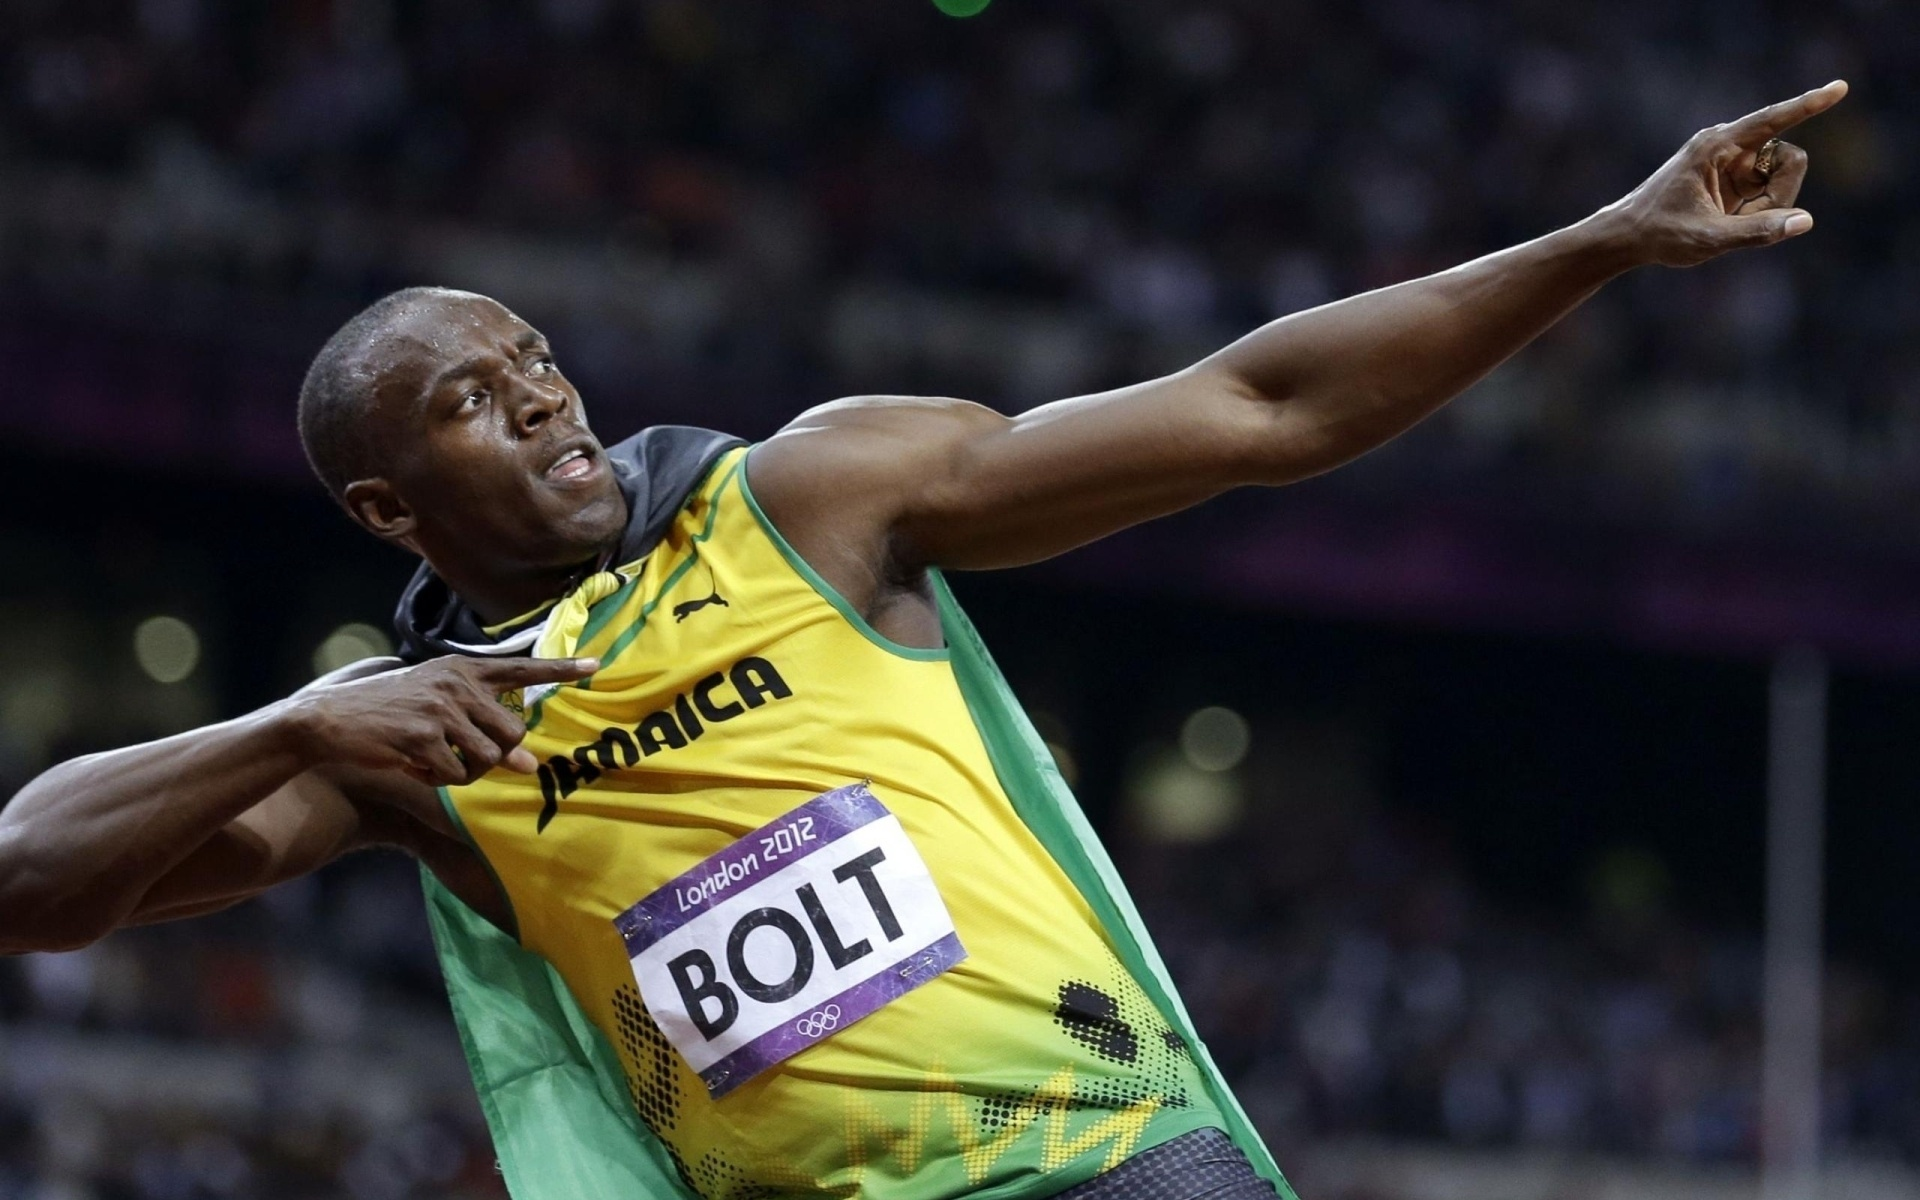 Usain Bolt Pictures HD Wallpapers 9 8